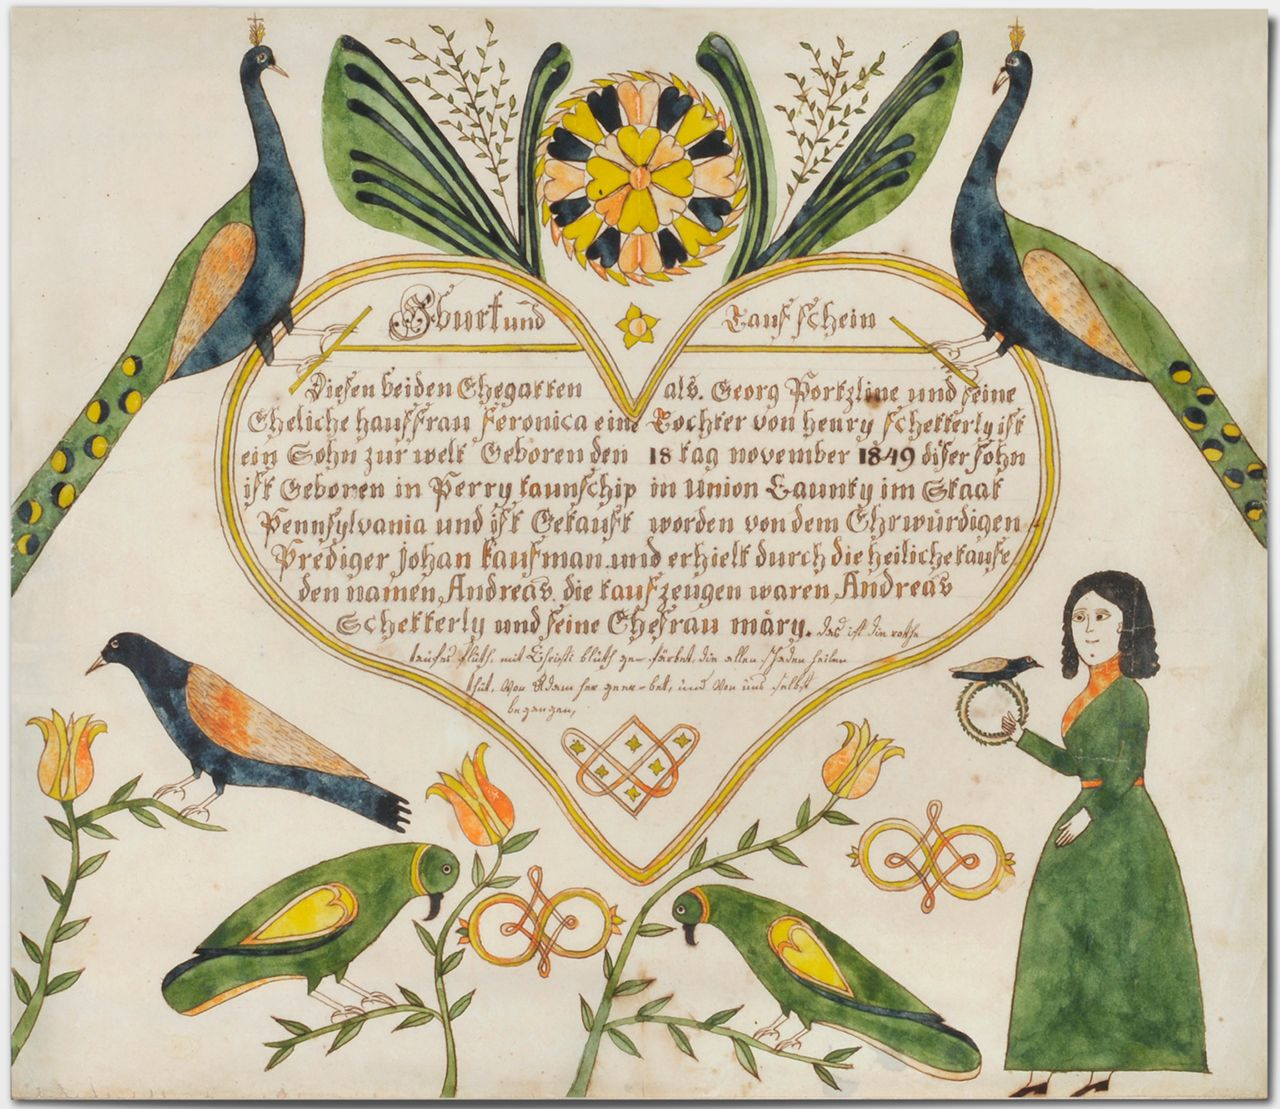 philamuseum: Enjoy the expressive fraktur tradition on view in ...